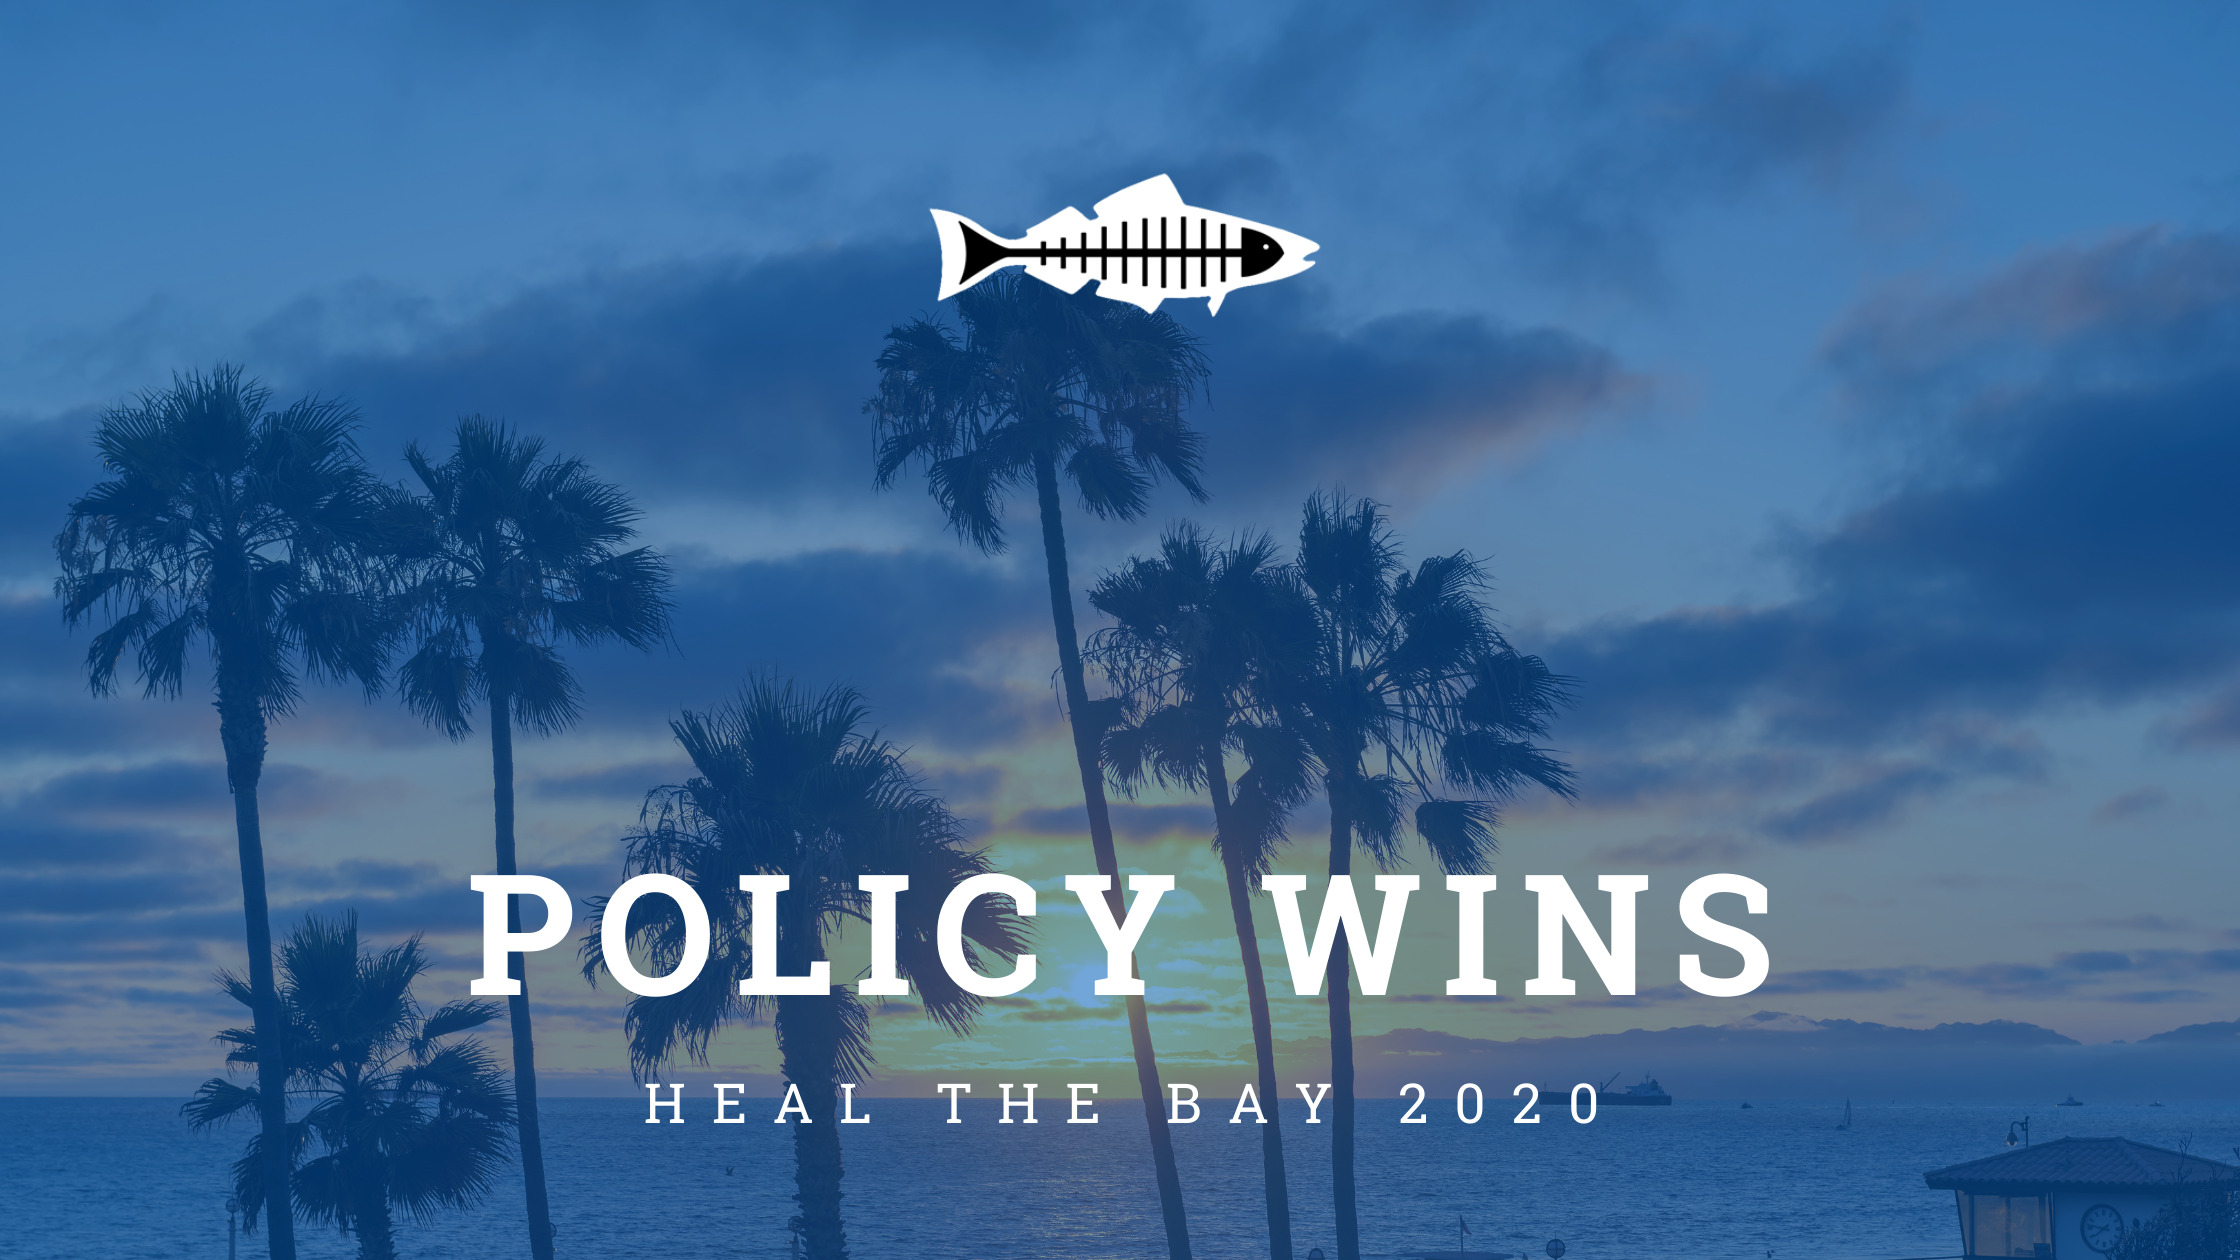 heal the bay environmental policy wins 2020